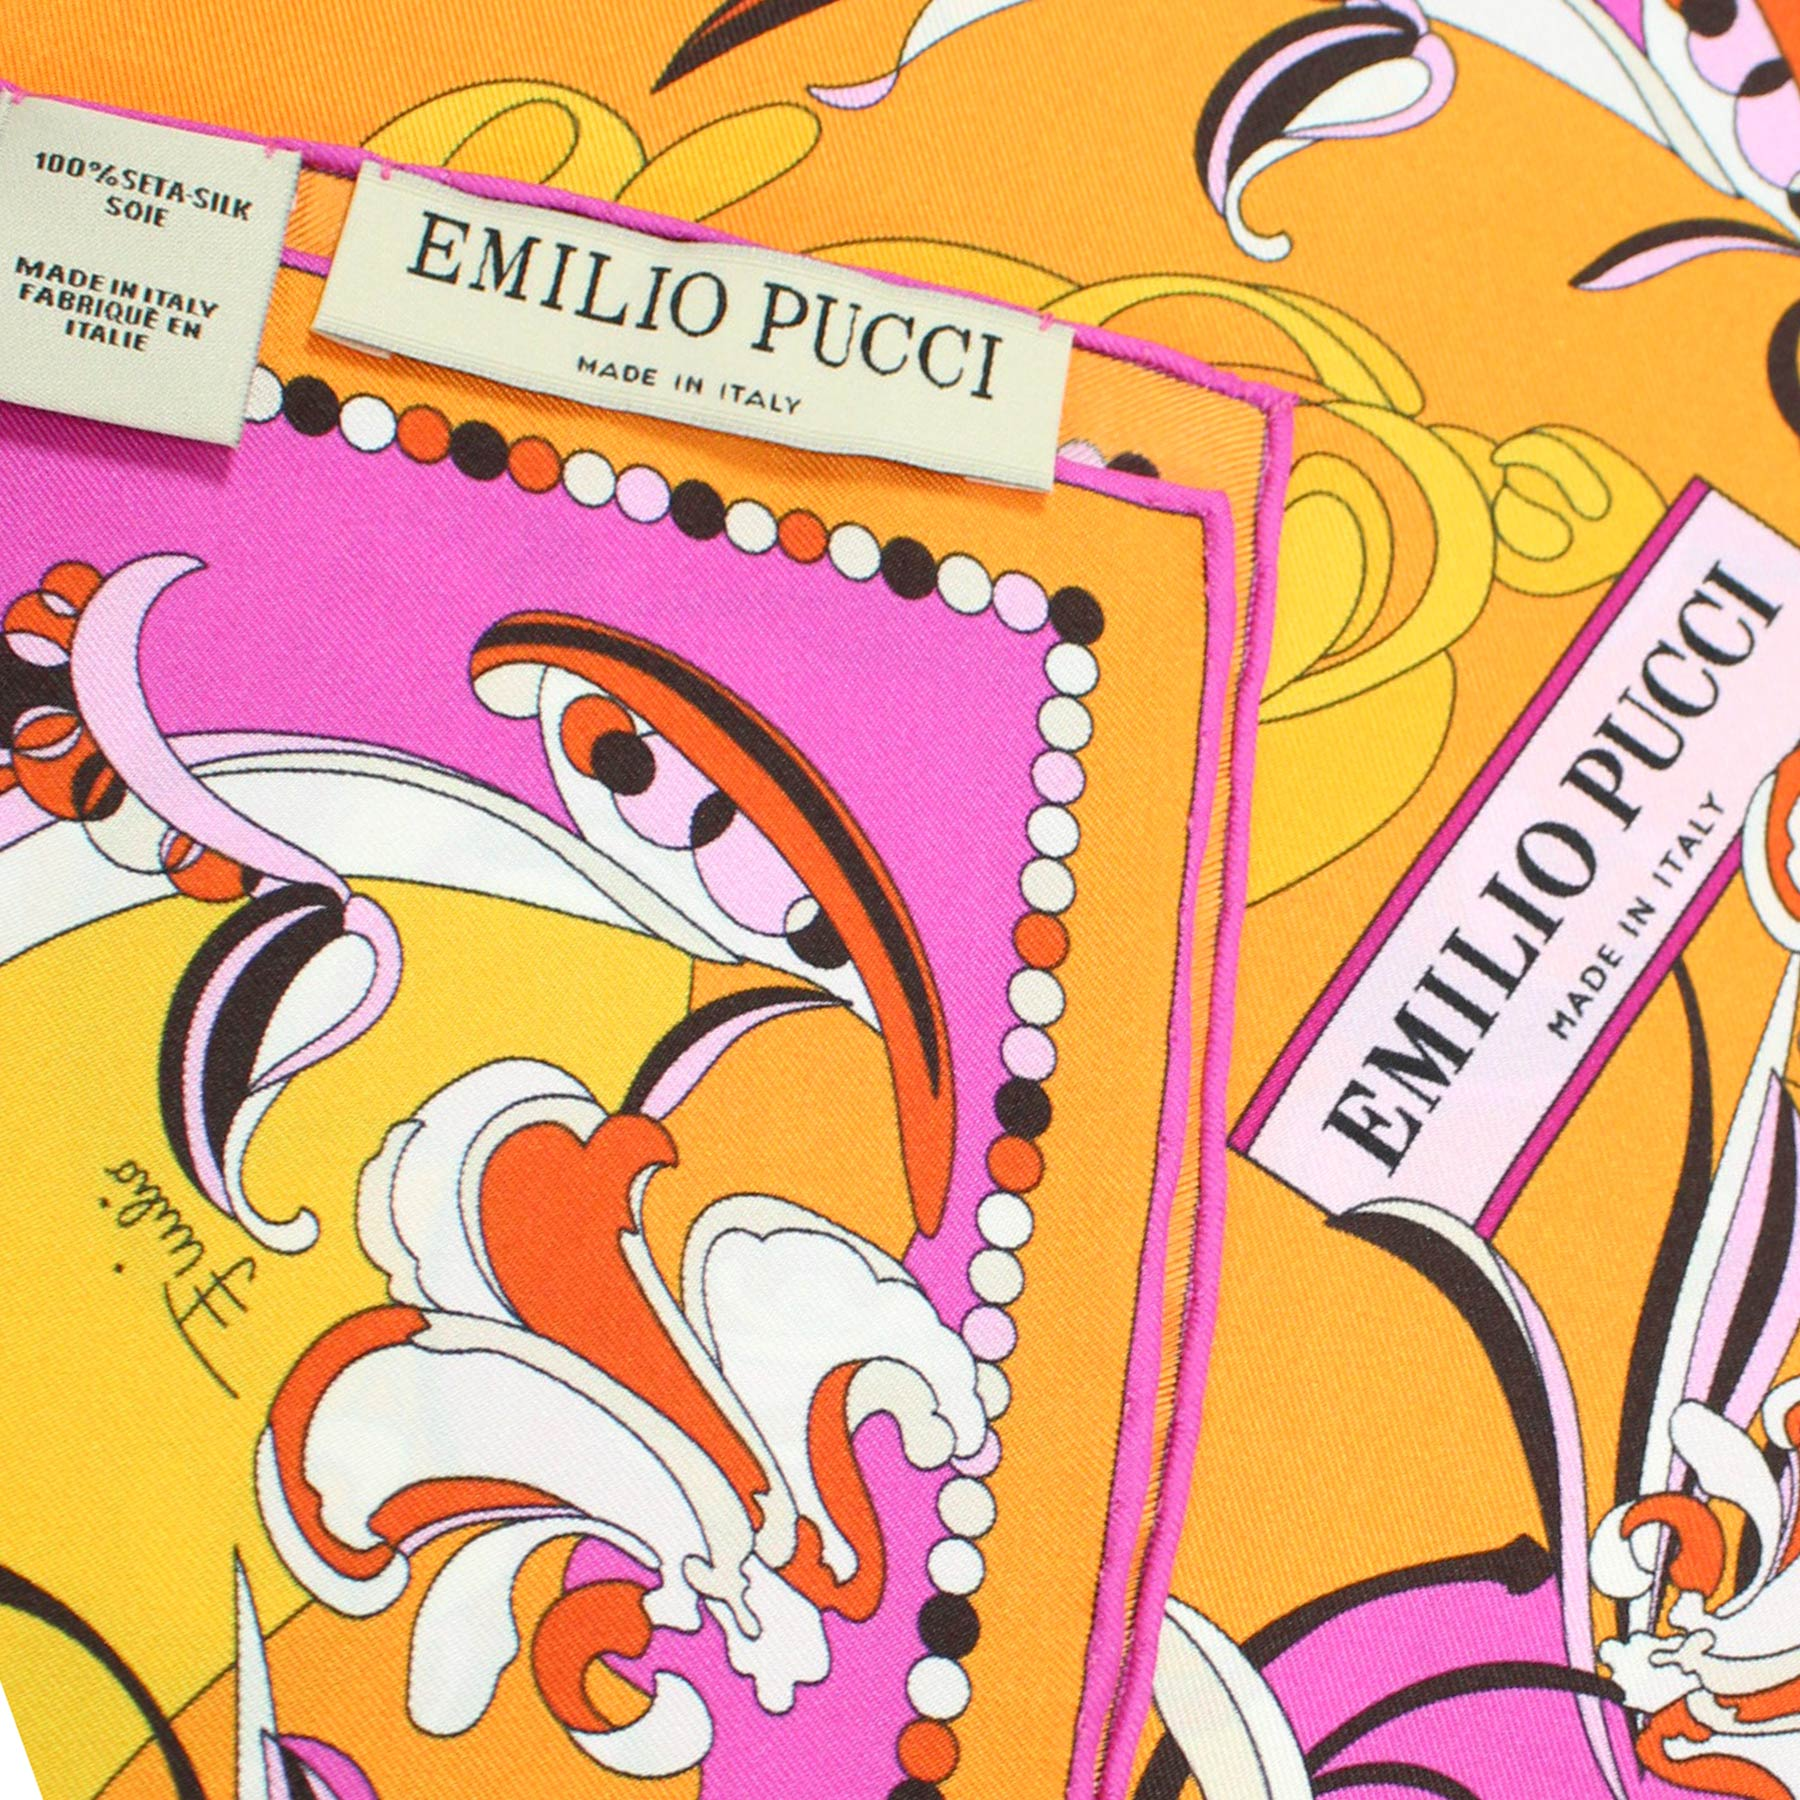 Authentic Emilio Pucci